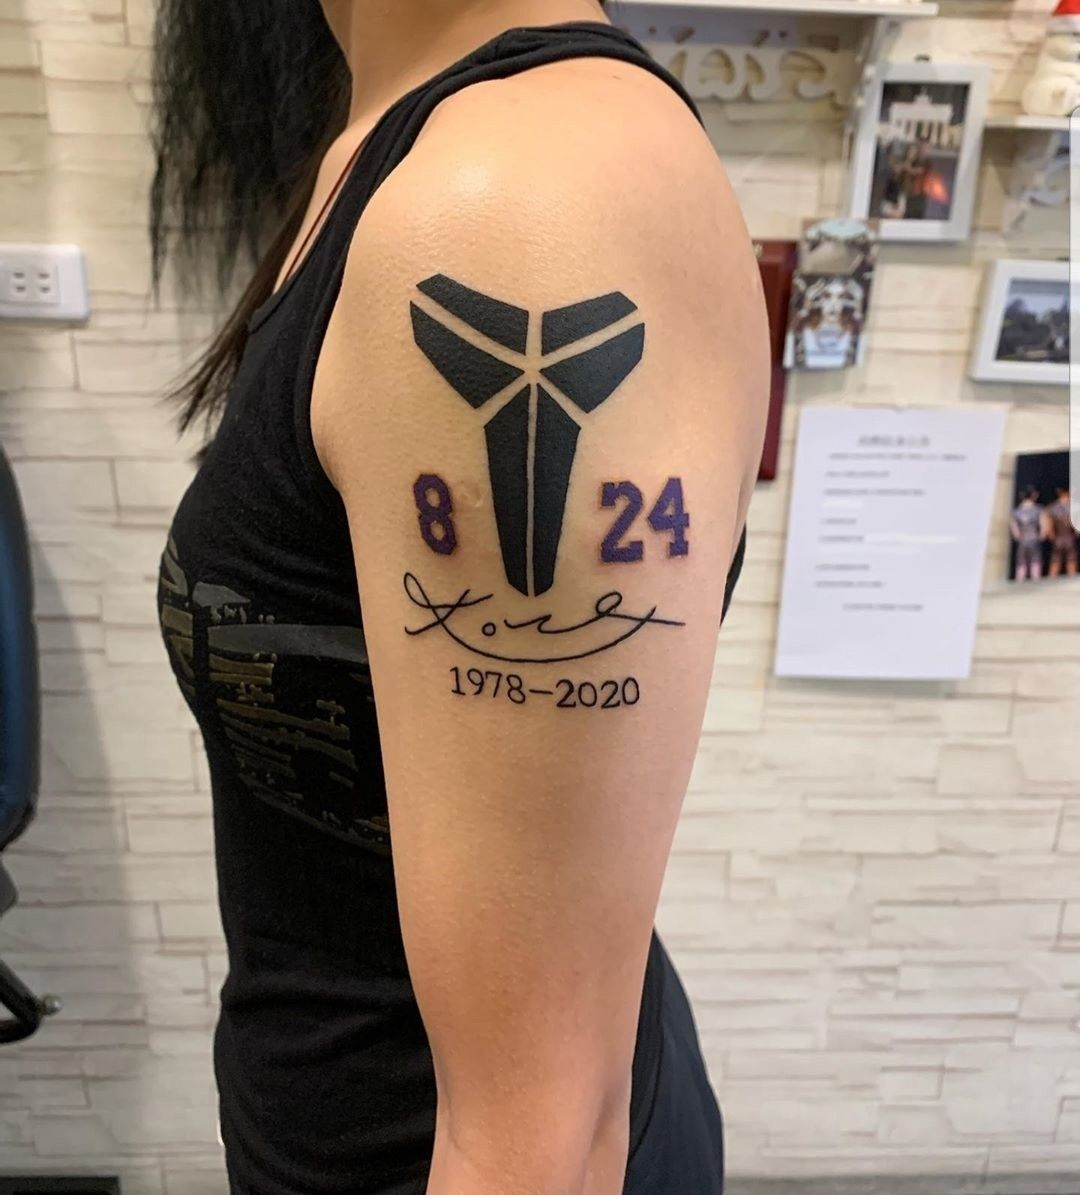 Pin by Annette Pulido on Tattoos in 2020 | Kobe bryant